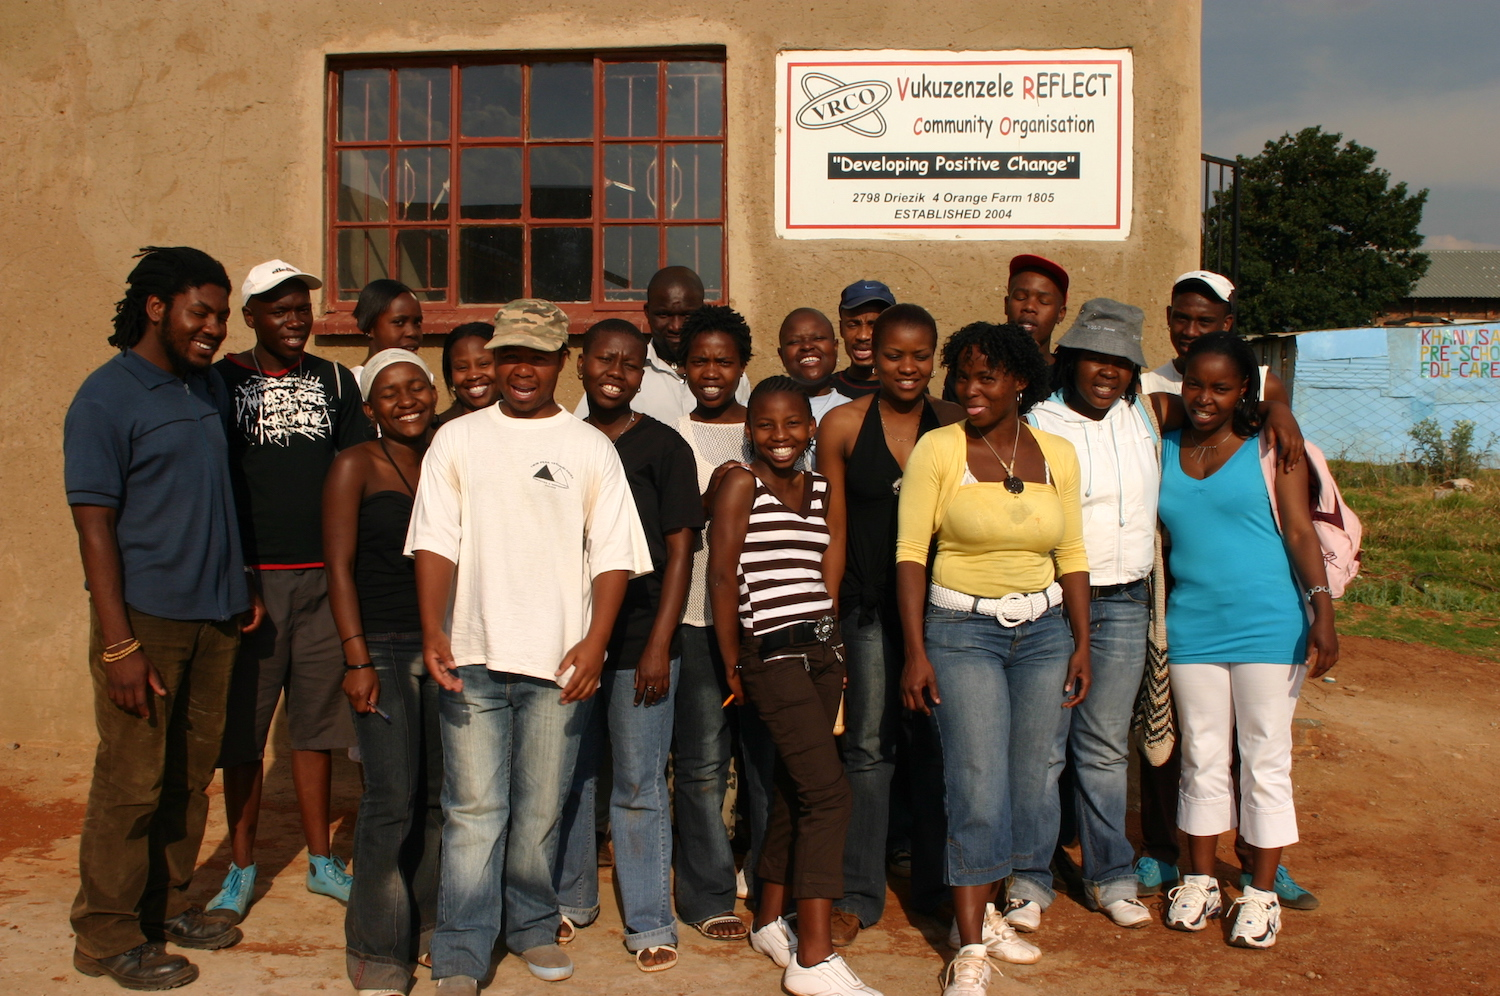 The Youth Photo Reflect participants, Orange Farm